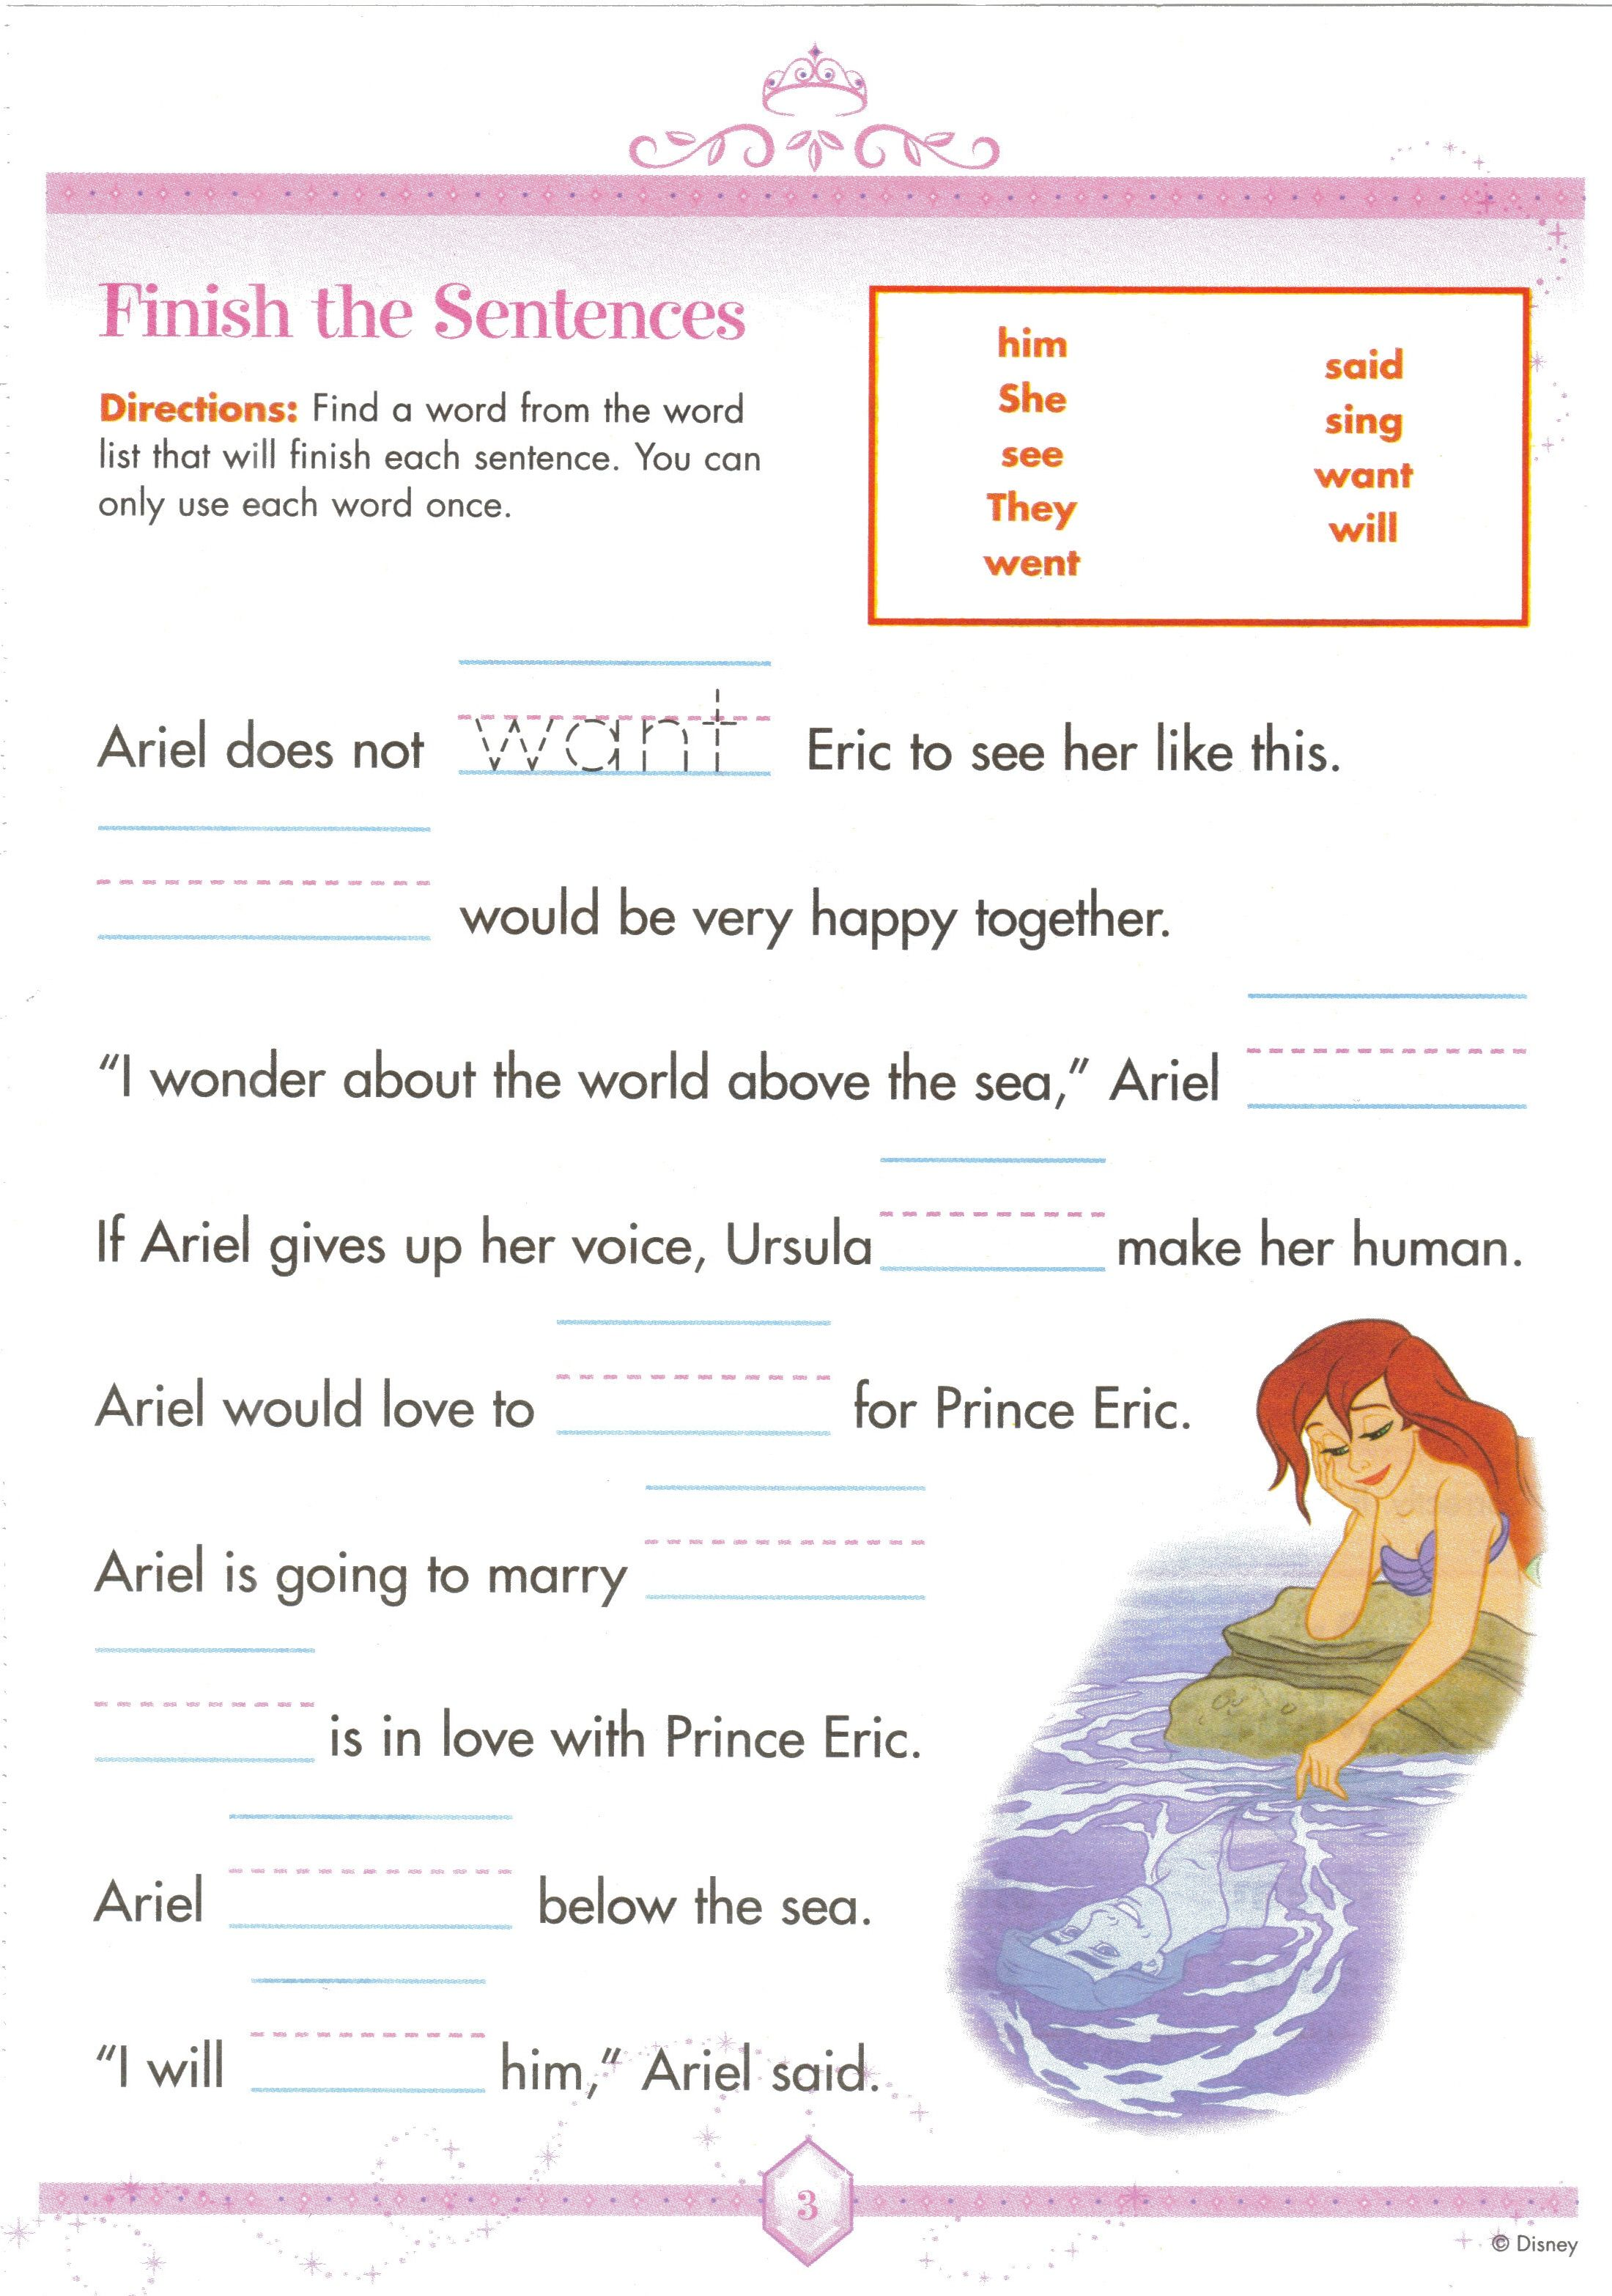 Weirdmailus  Prepossessing  Images About Worksheets On Pinterest  Fun Facts For Kids  With Outstanding  Images About Worksheets On Pinterest  Fun Facts For Kids Earth Day Worksheets And Jungles With Awesome Worksheet On Time Also Firefighter Worksheets For Preschool In Addition Greek And Latin Prefixes And Suffixes Worksheets And Free Printable Fact And Opinion Worksheets As Well As Common And Proper Nouns Worksheets Grade  Additionally Commutative And Associative Property Worksheets From Pinterestcom With Weirdmailus  Outstanding  Images About Worksheets On Pinterest  Fun Facts For Kids  With Awesome  Images About Worksheets On Pinterest  Fun Facts For Kids Earth Day Worksheets And Jungles And Prepossessing Worksheet On Time Also Firefighter Worksheets For Preschool In Addition Greek And Latin Prefixes And Suffixes Worksheets From Pinterestcom